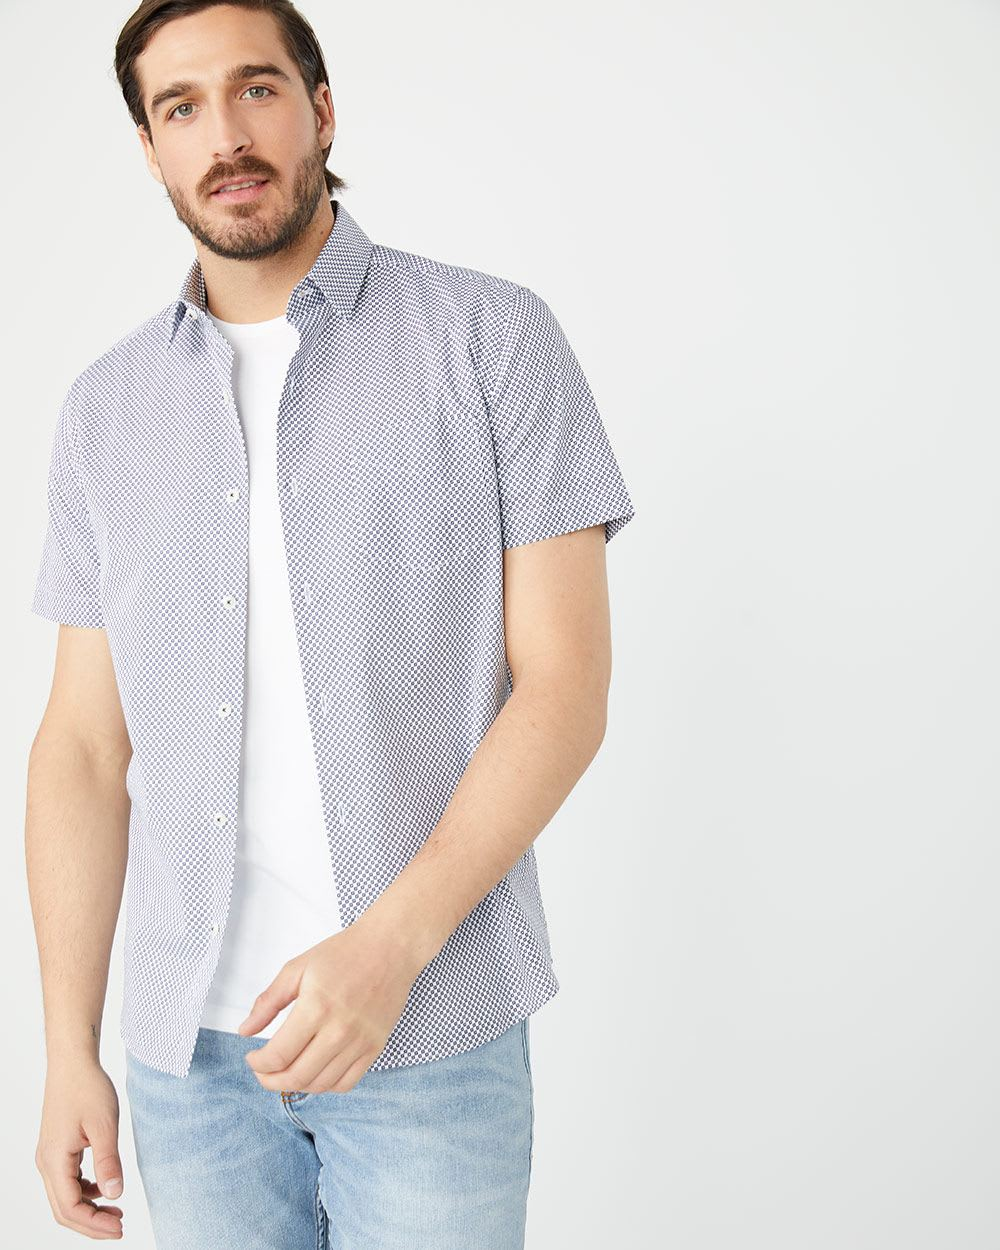 Tailored Fit Short Sleeve white geo Shirt